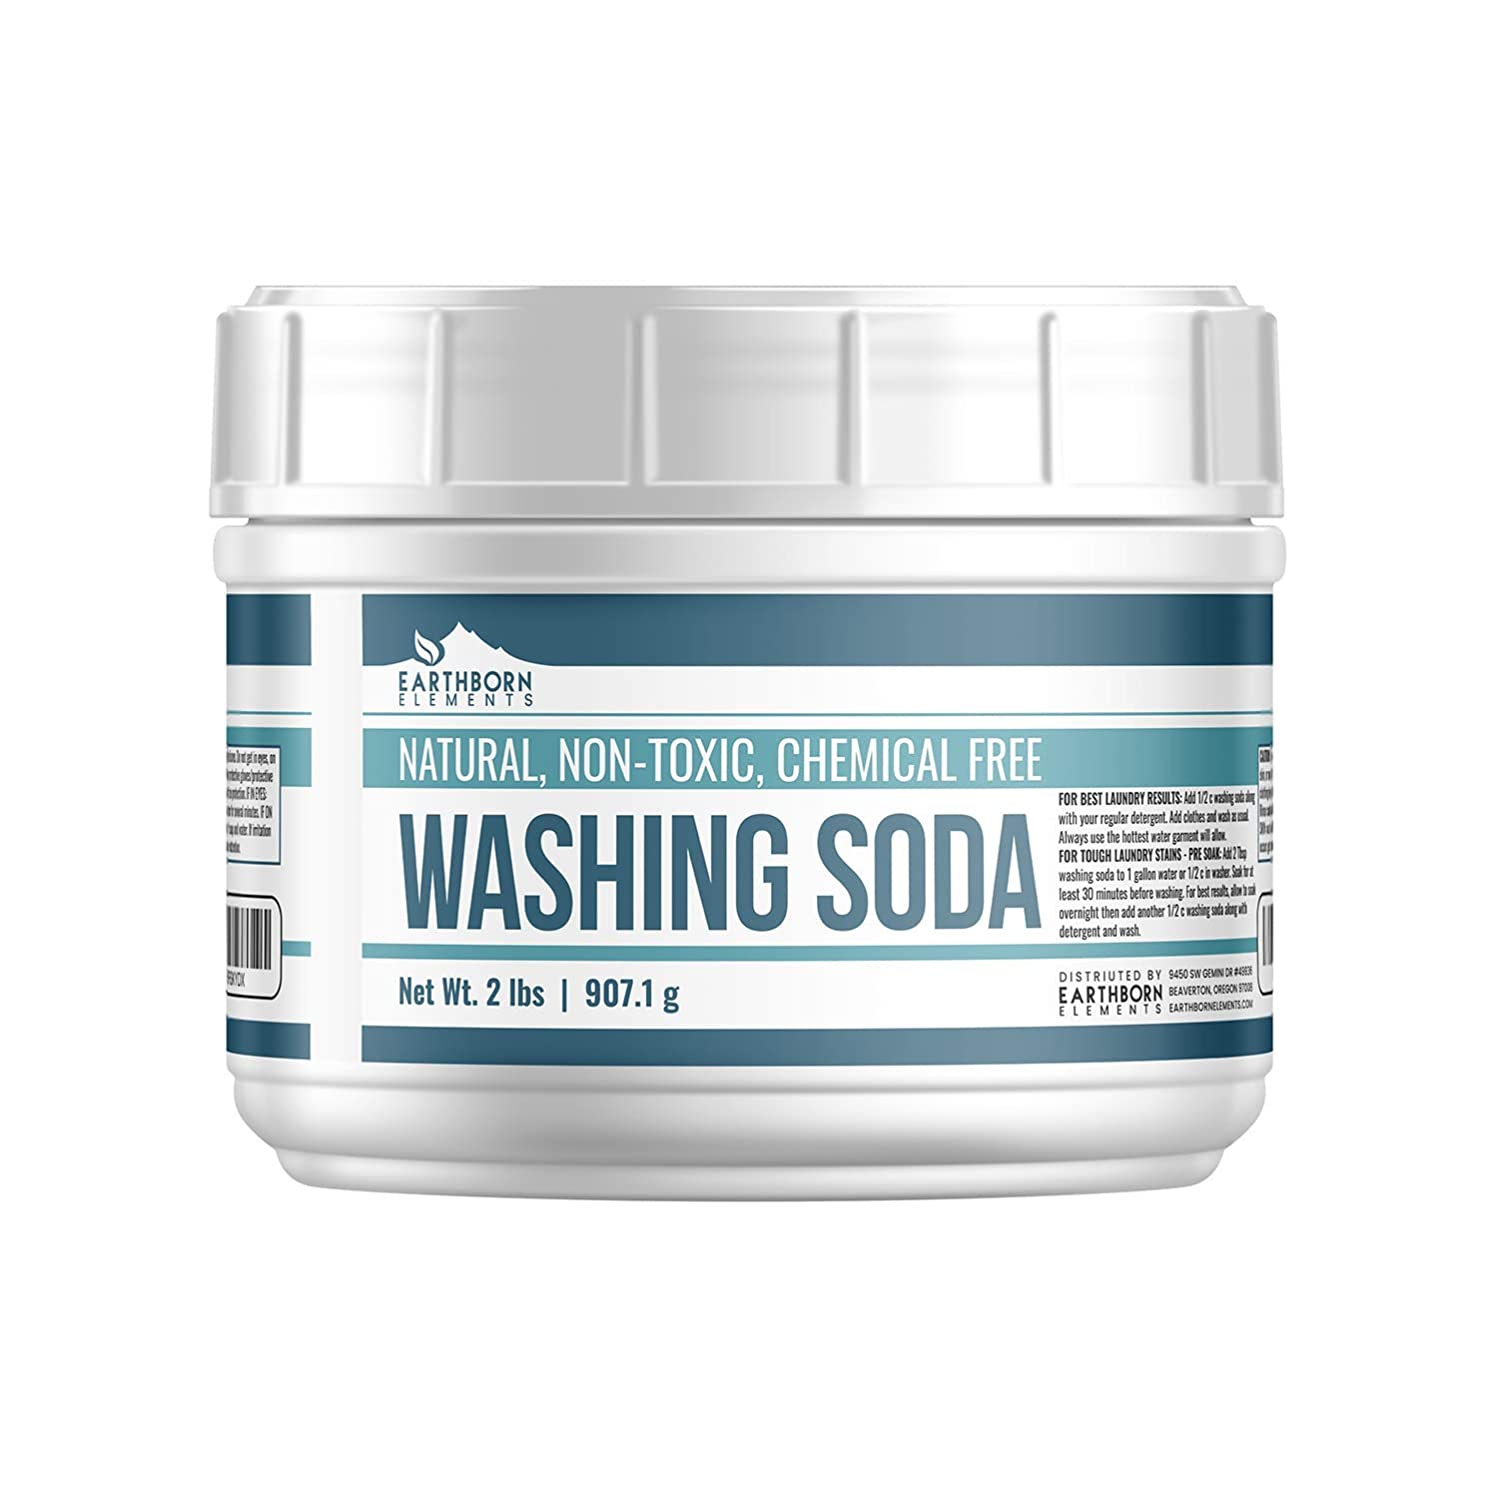 All-Natural Washing Soda (2 lb (32 oz)) by Earthborn Elements, Resealable Tub with Scoop, Soda Ash, Sodium Carbonate, Laundry Booster, Non-Toxic, Hypoallergenic